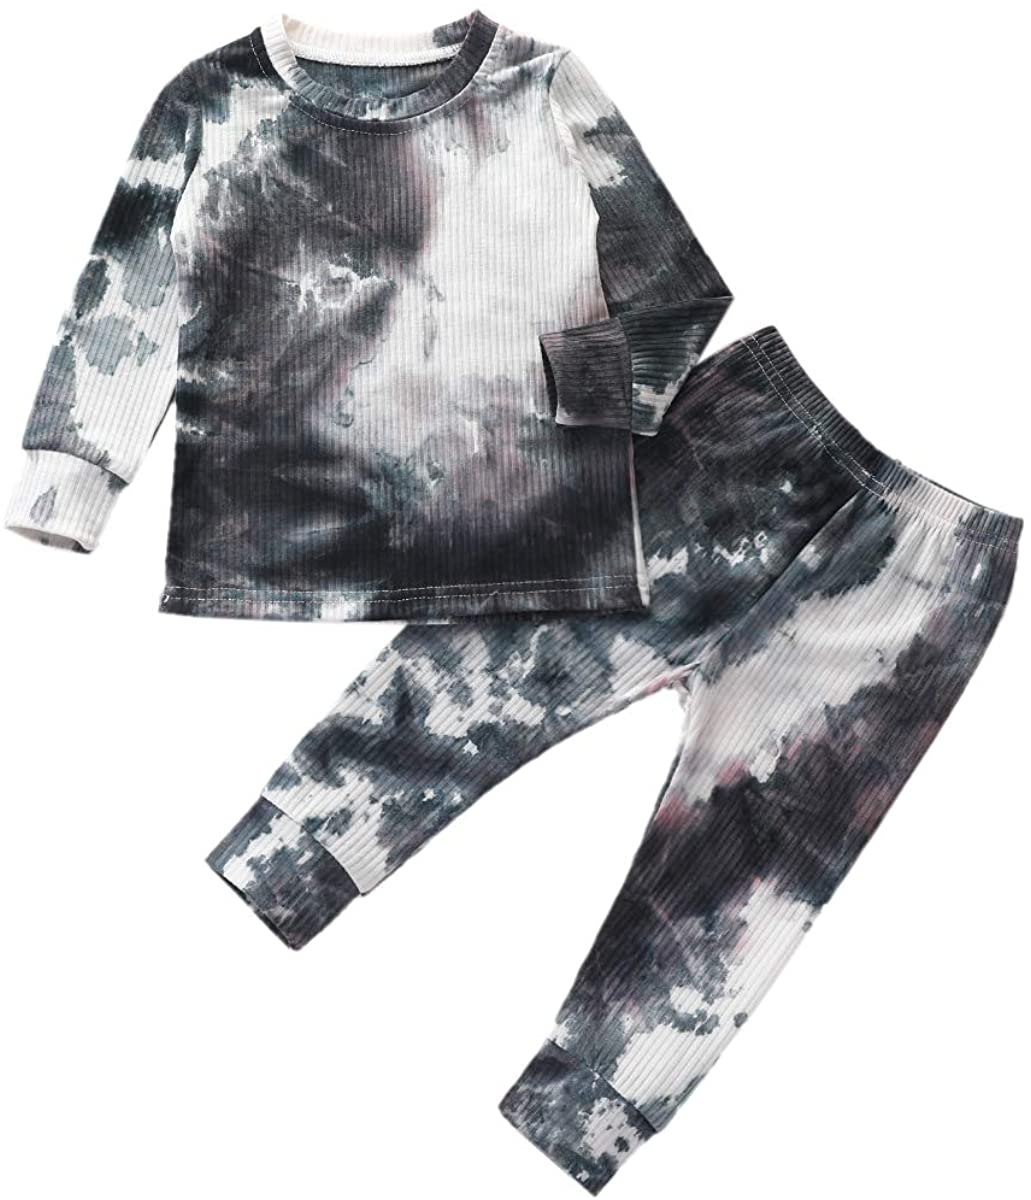 Toddler Little Girl Boy Clothes Tie Dye Sweatshirt with Pants Girls Boys Fall Winter Outfit Pajamas